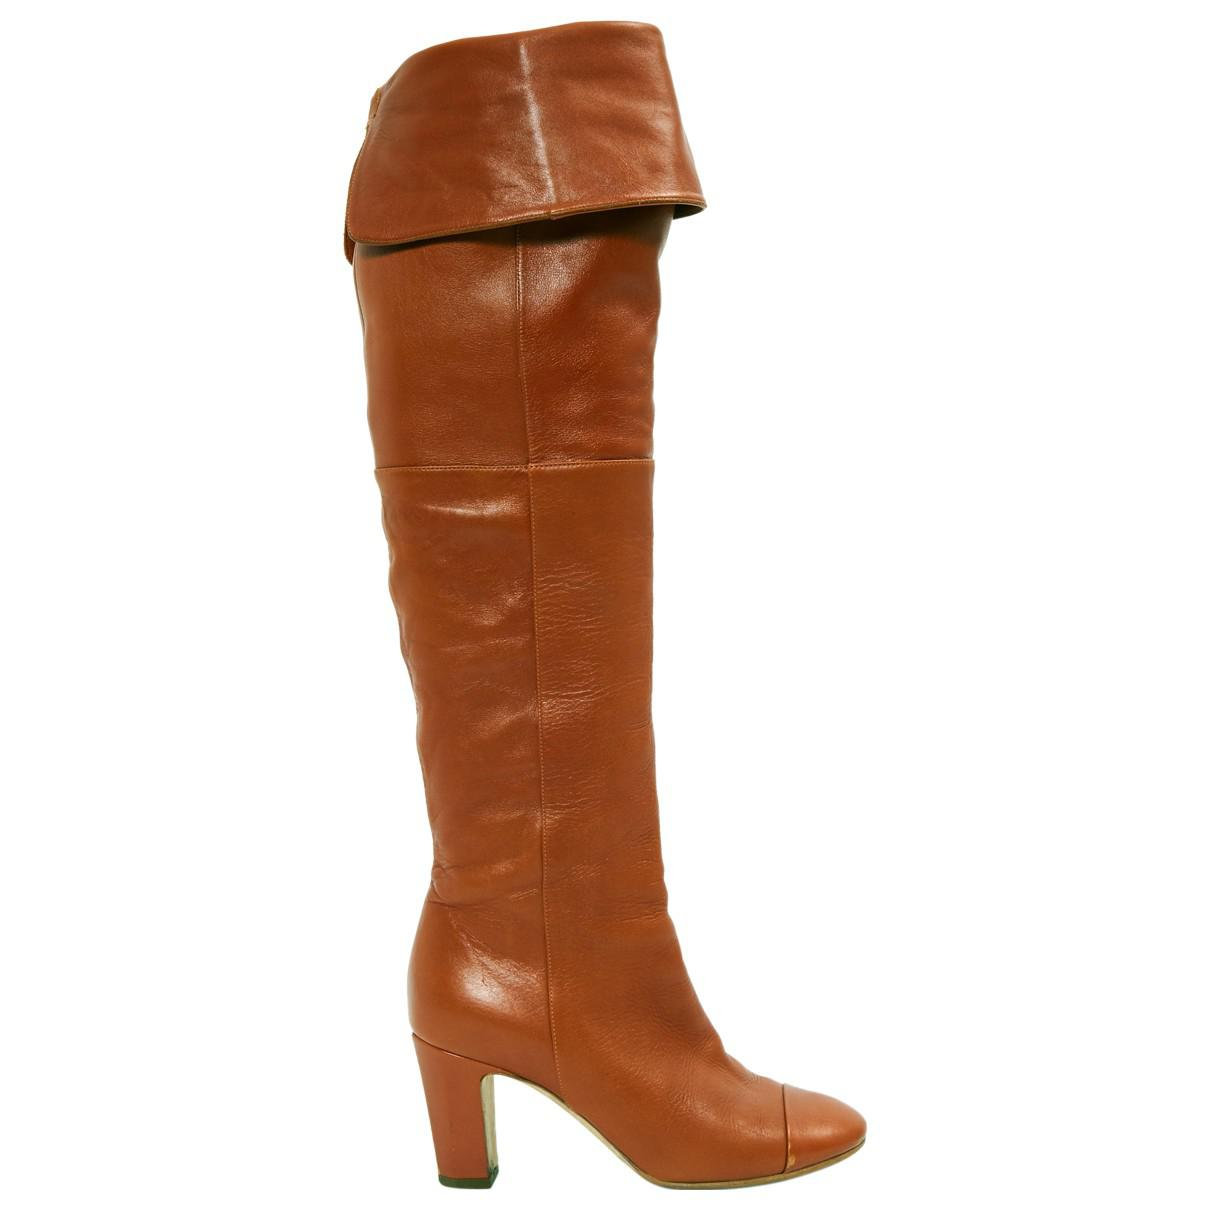 d385497904e8 Chanel Leather Boots in Brown - Lyst